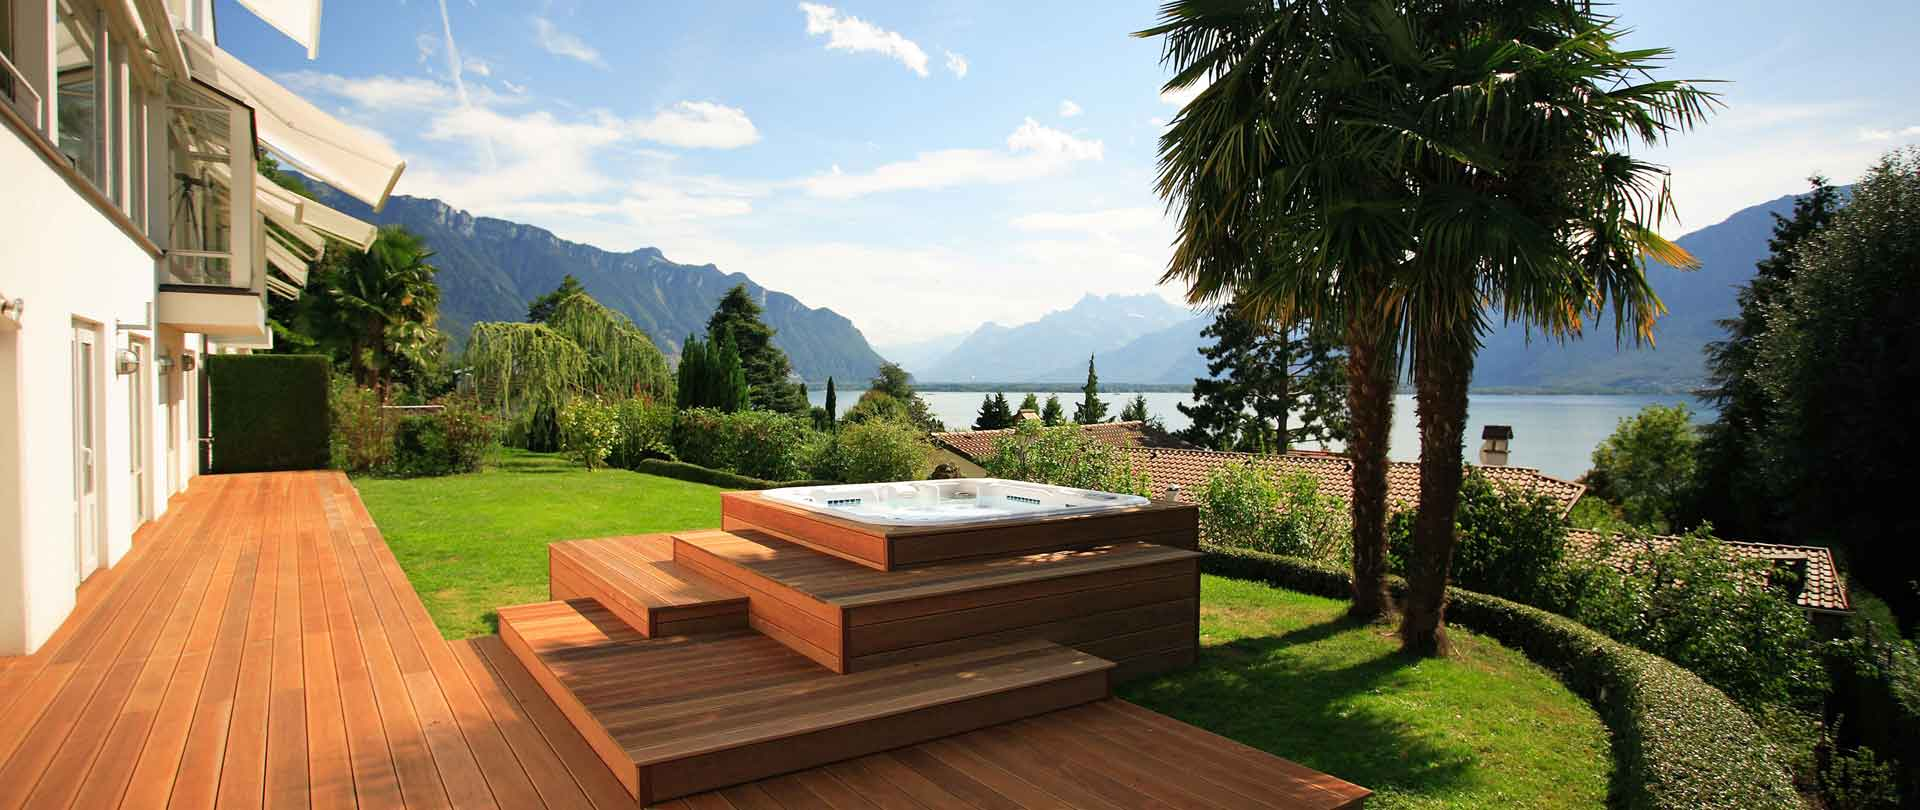 Spa Jacuzzi Annecy D1